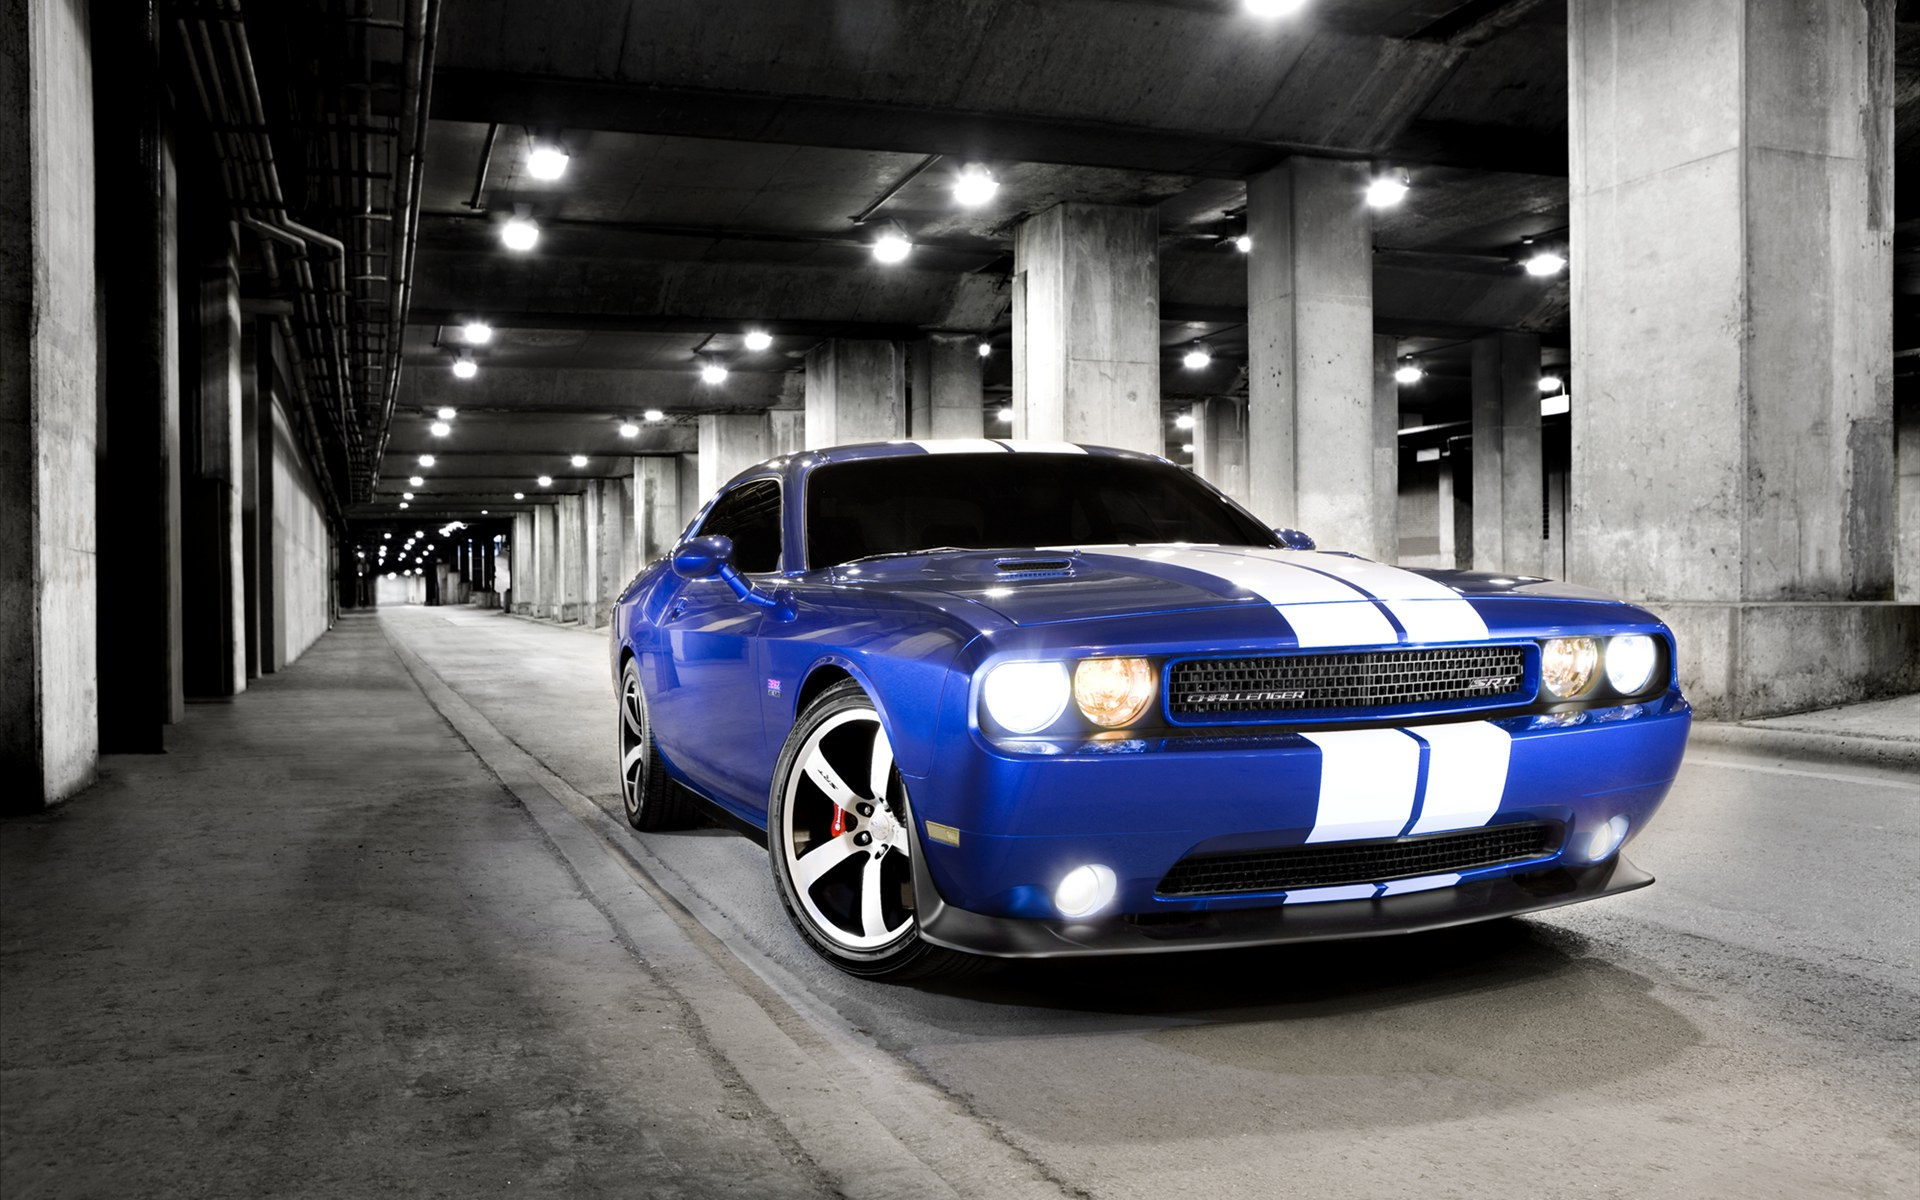 dodge challenger srt8 wallpaper hd image   Automotive Zone 1920x1200